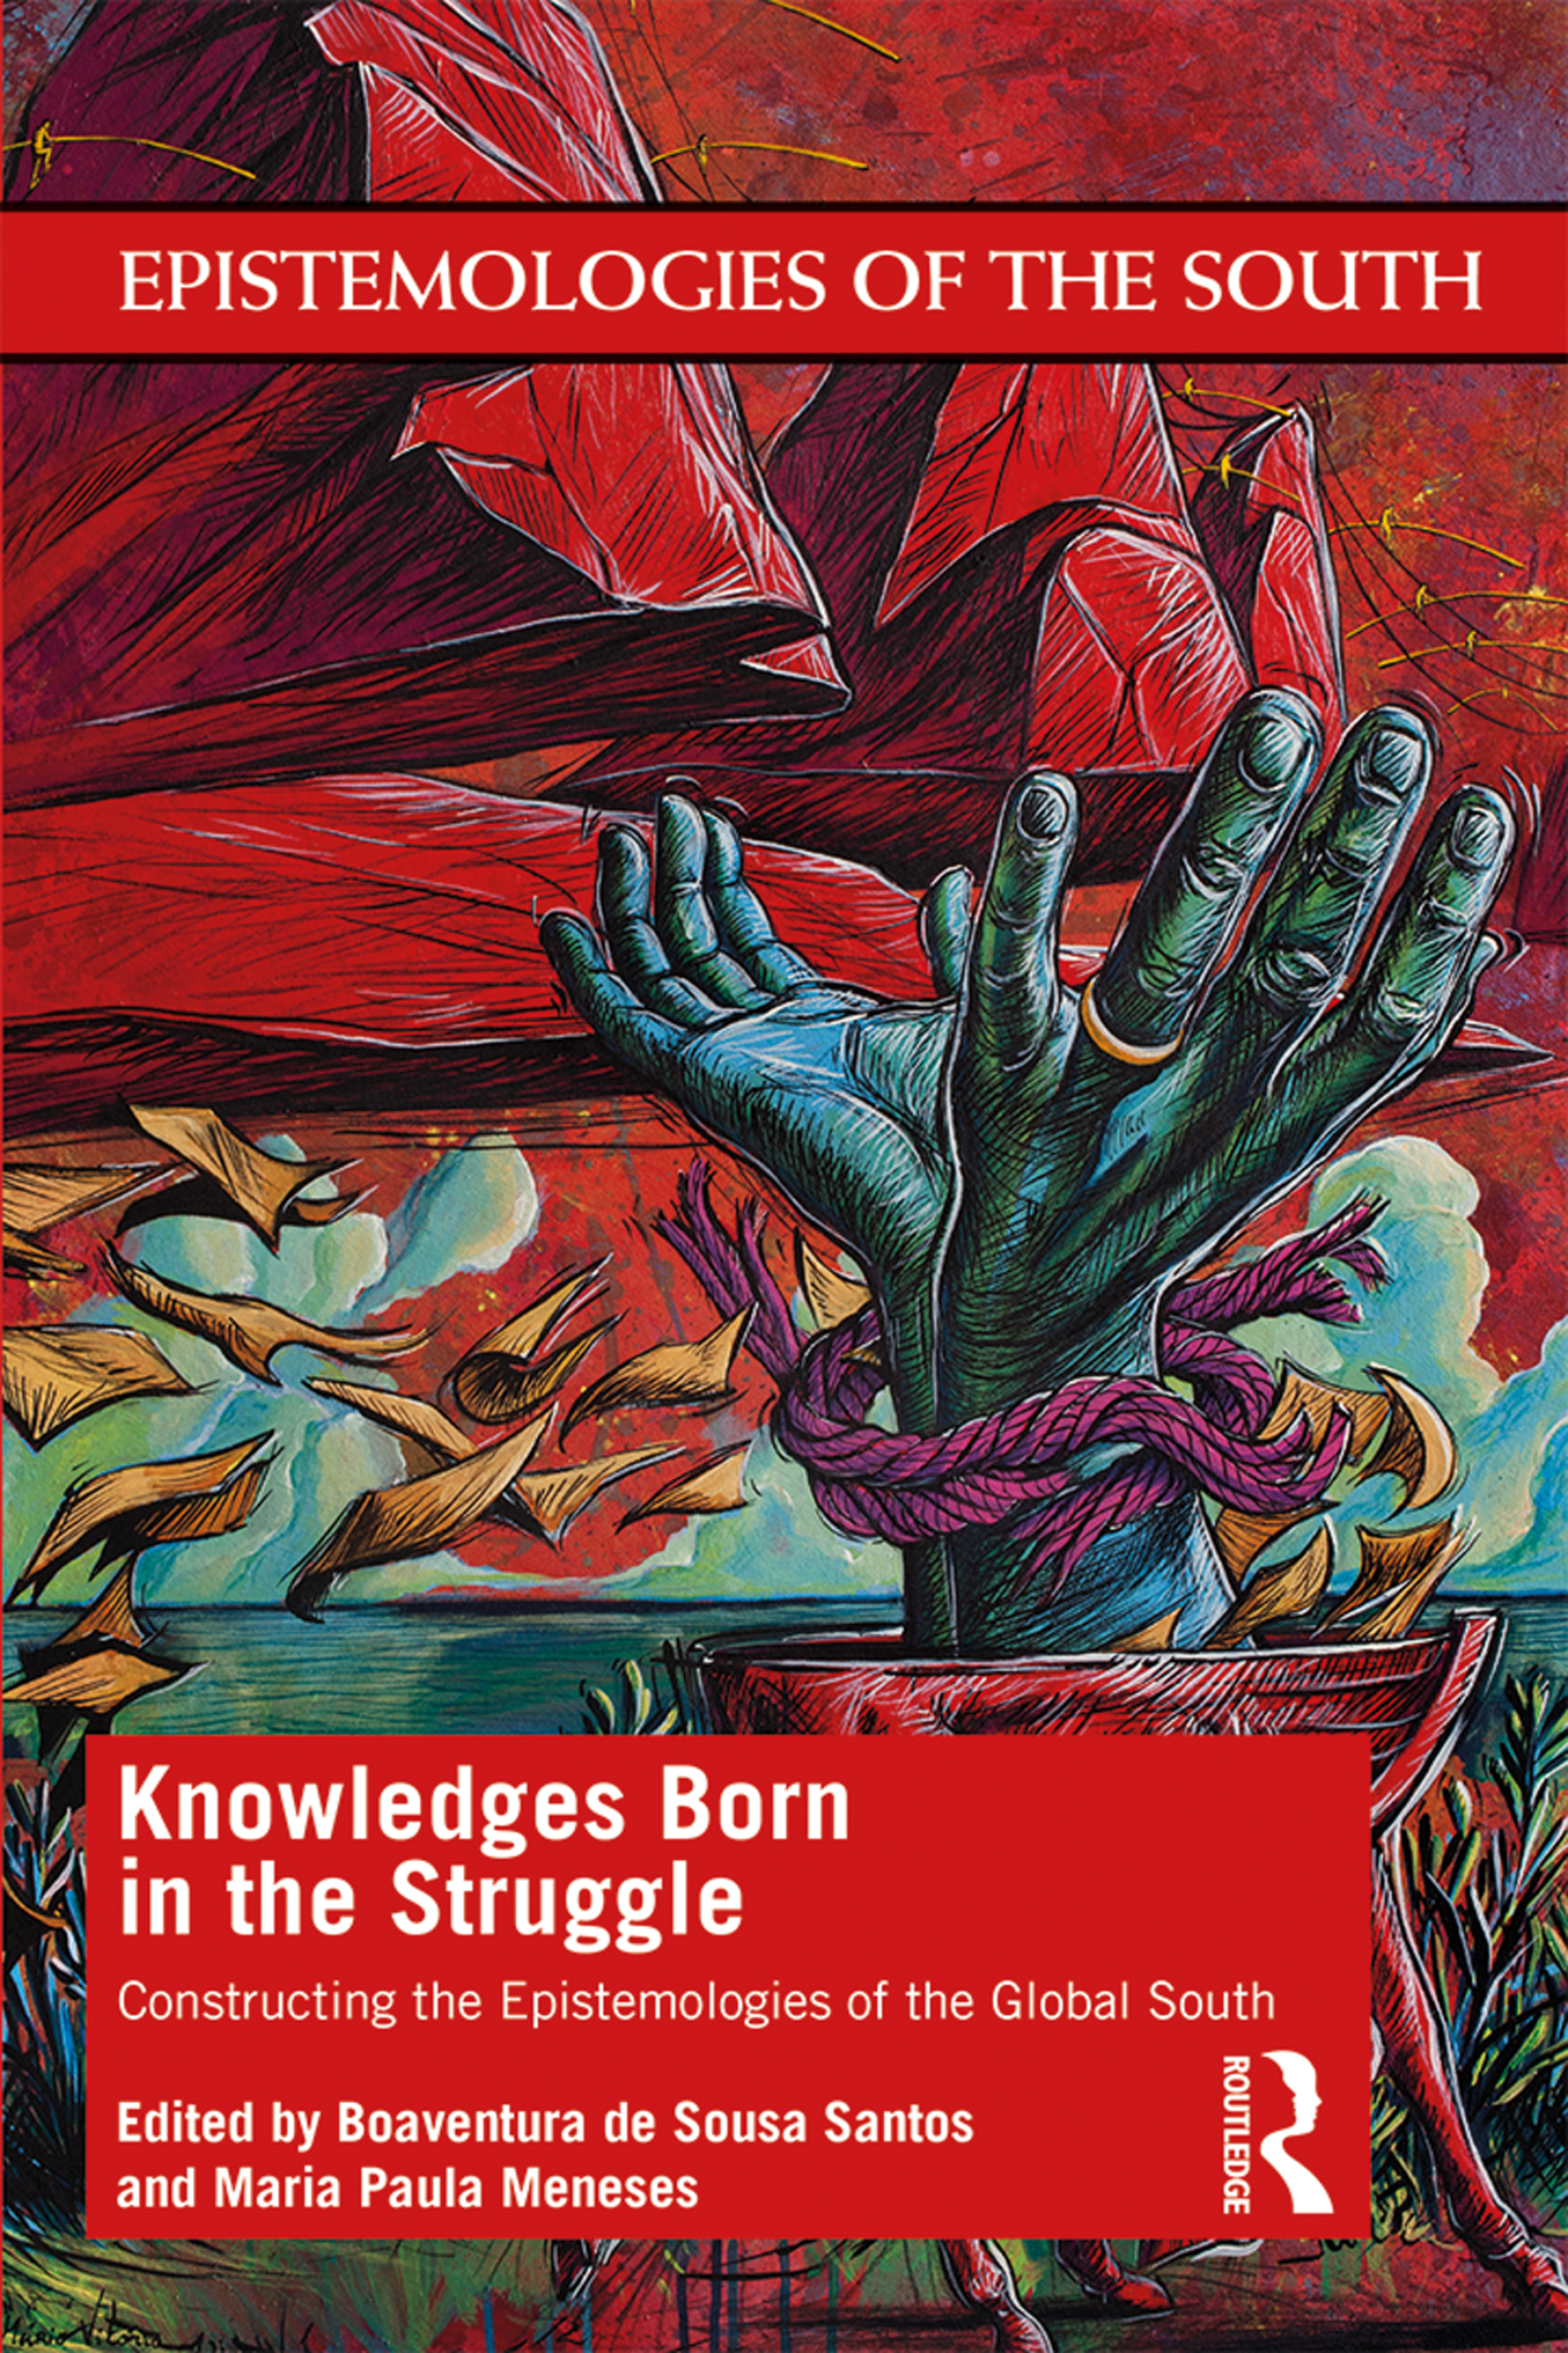 Knowledges Born in the Struggle: Constructing the Epistemologies of the Global South book cover